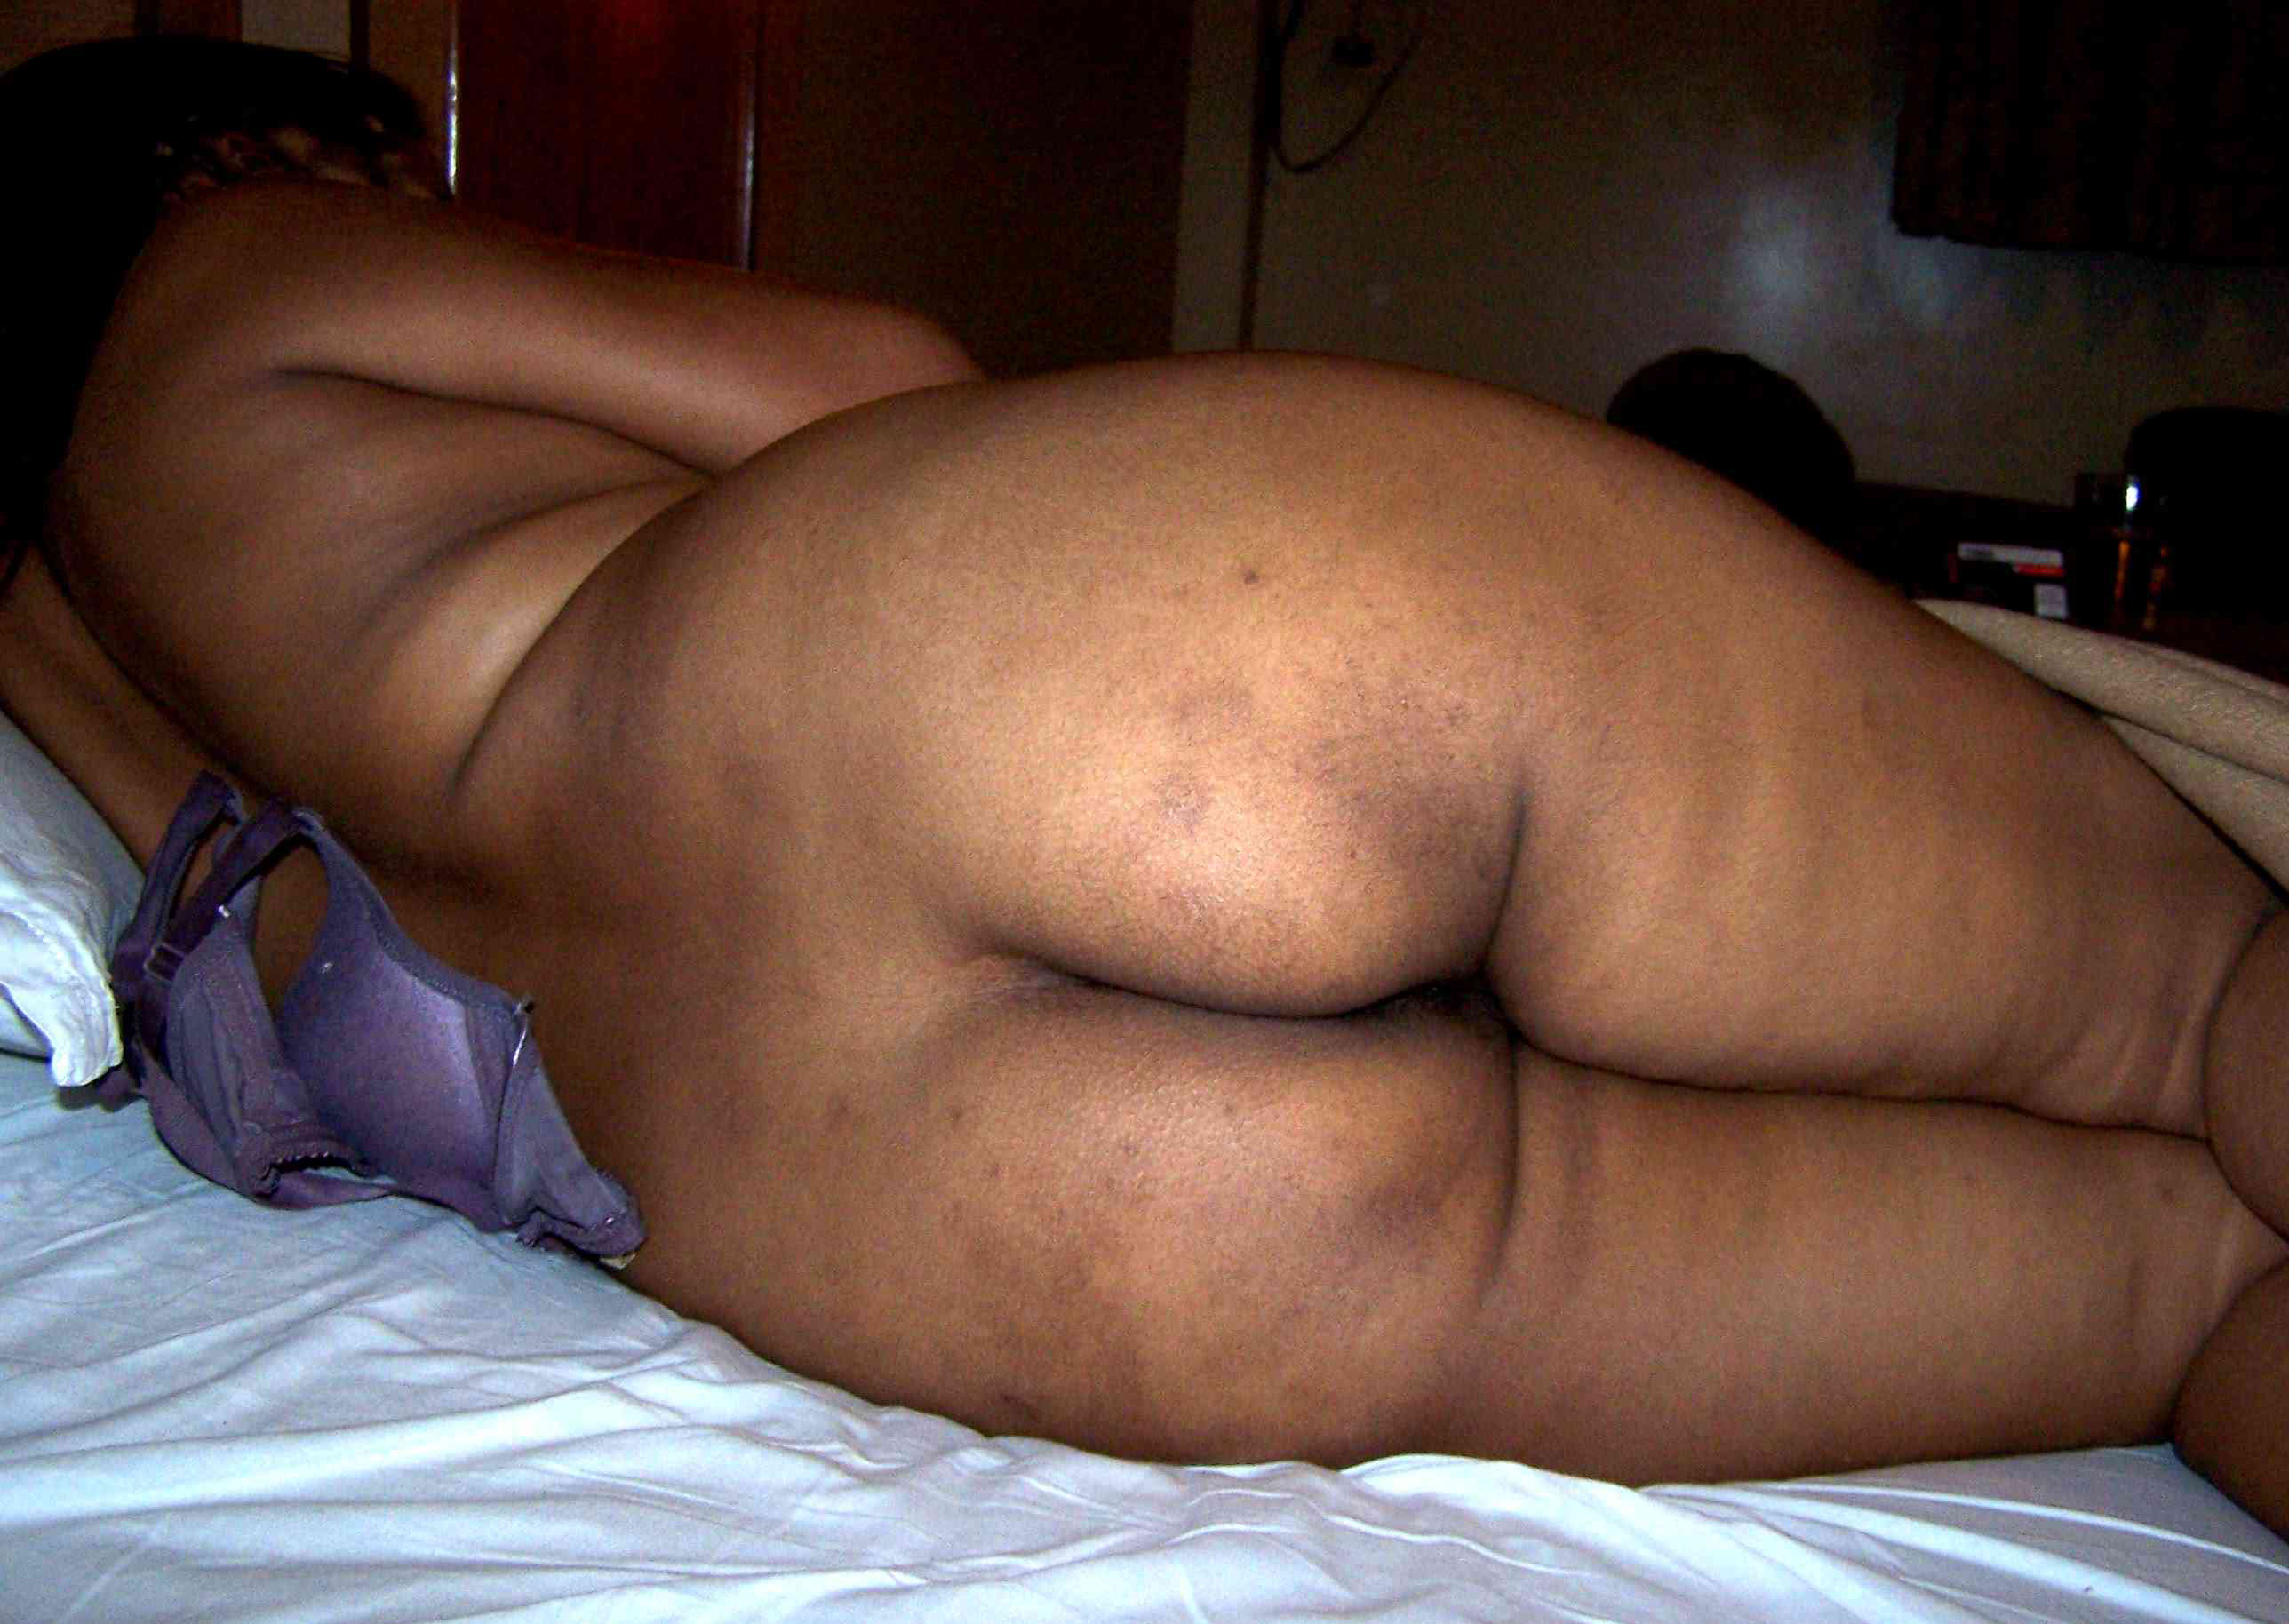 Tamil aunty nude back